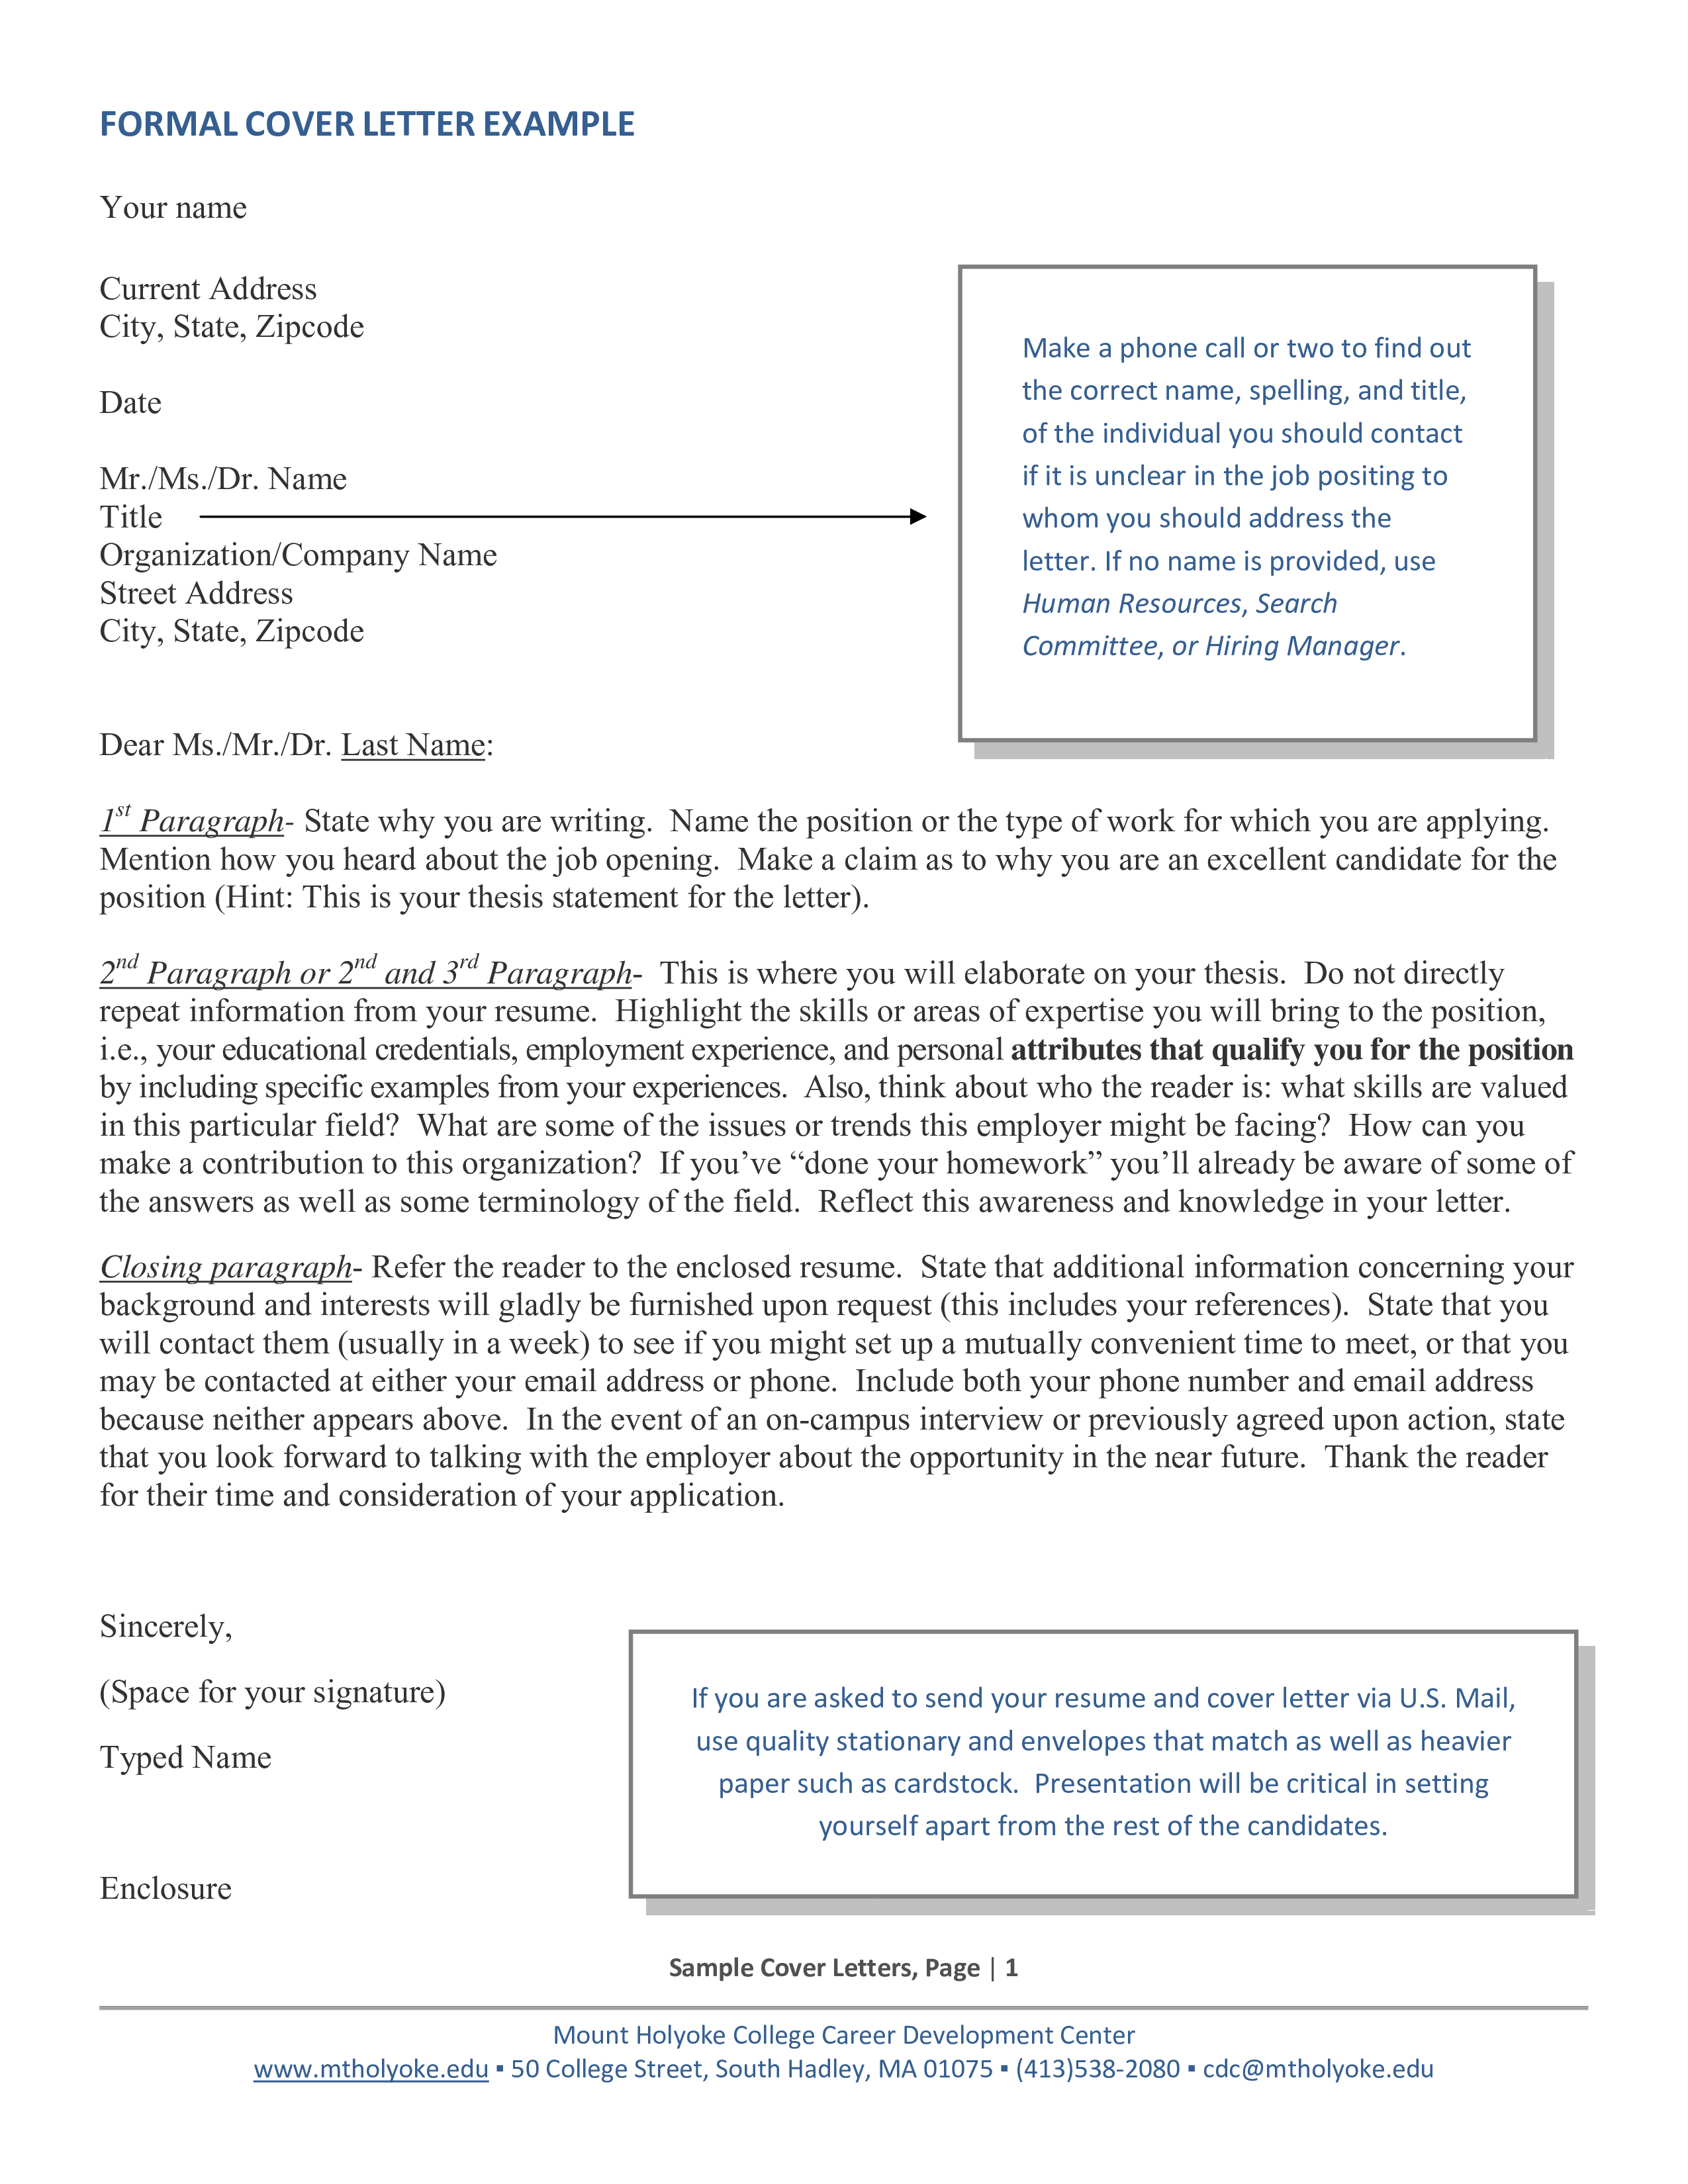 free formal resume application cover letter templates at